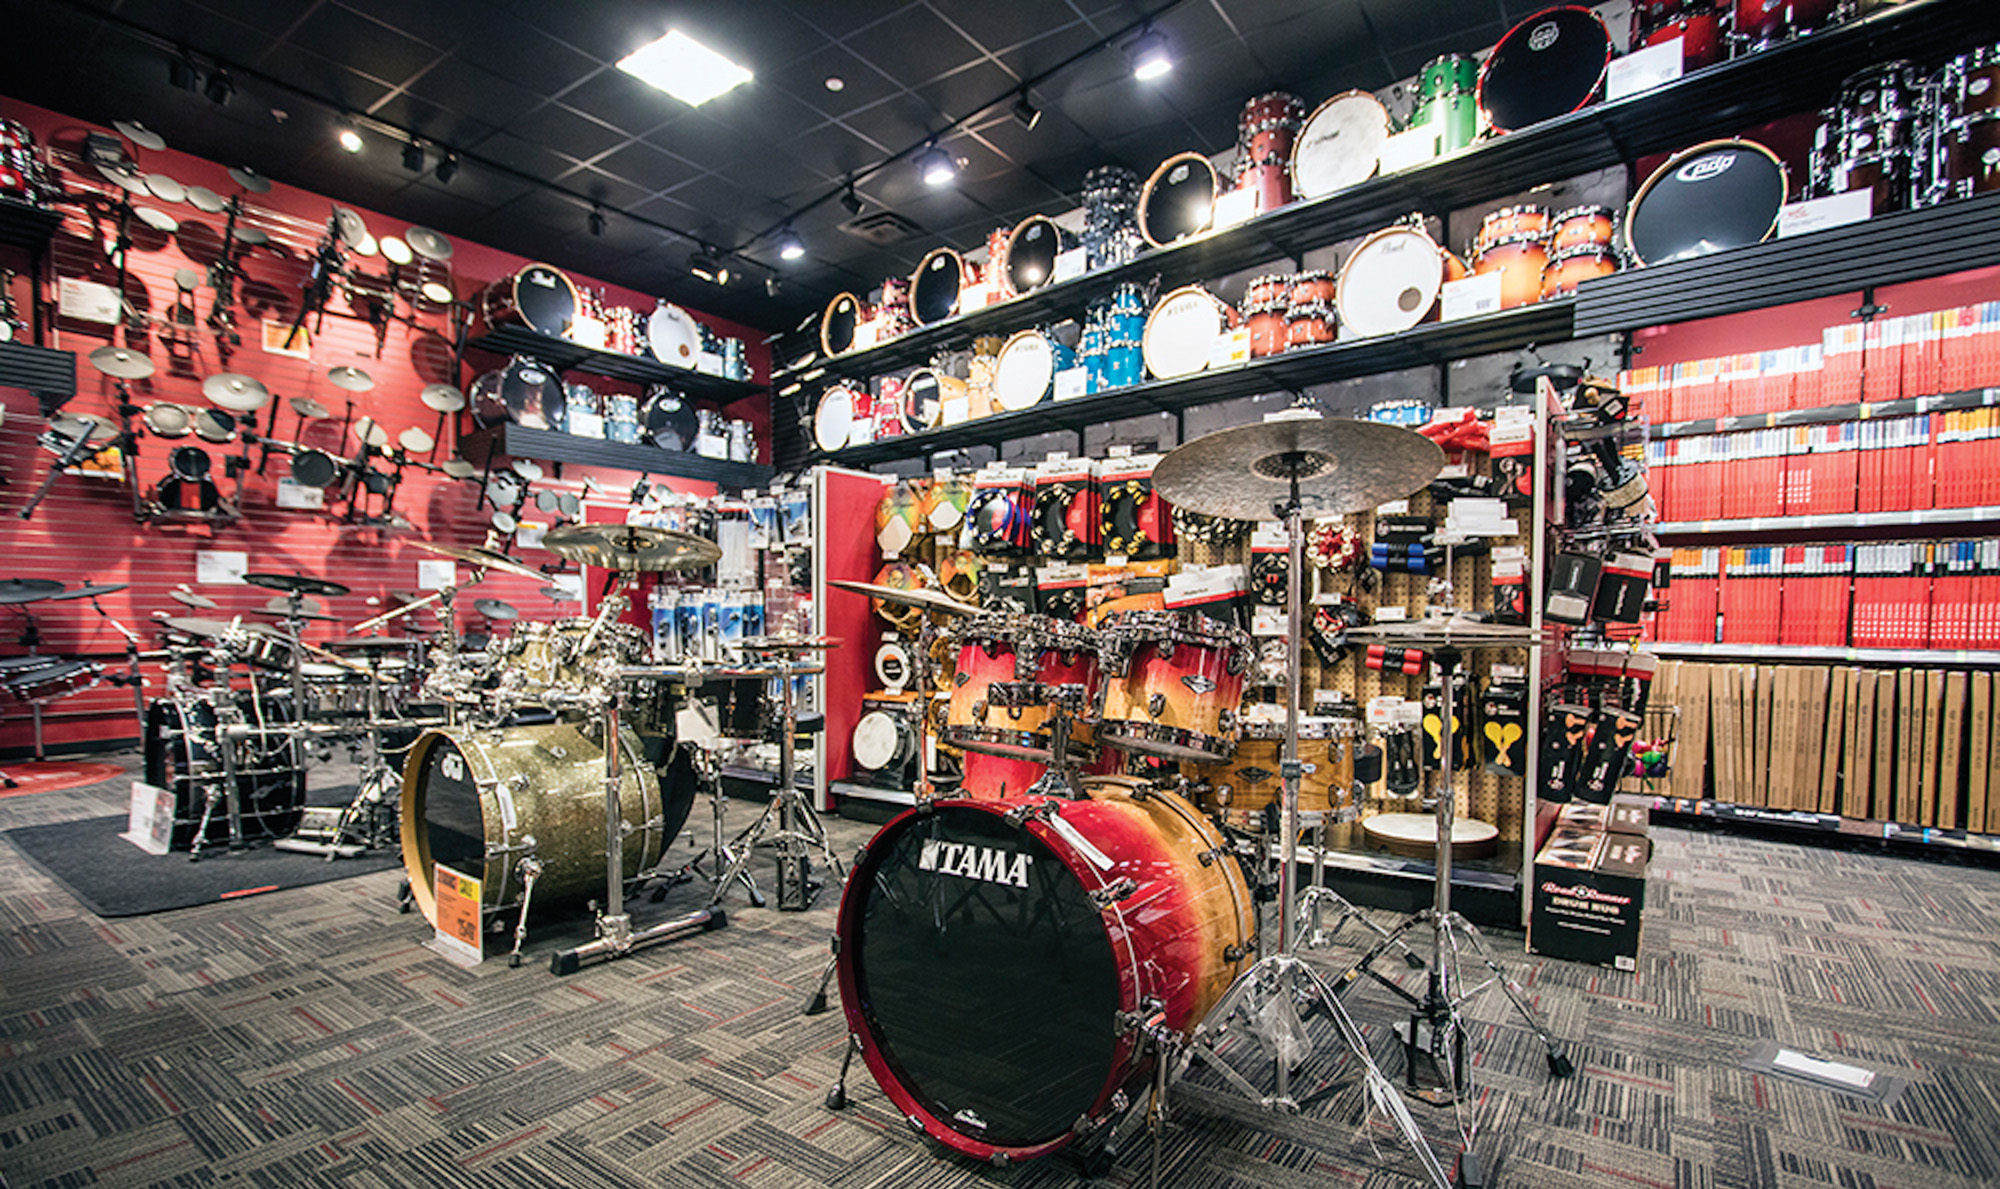 Guitar Center is an American music retailer chain. It is the largest company of its kind in the United States, with locations. Its headquarters is in Westlake Village, California.. Guitar Center oversees various subsidiaries including Music & Arts, siti-immobilier.tk, LMI, Giardinelli, siti-immobilier.tk, Private Reserve Guitars, Woodwind and Brasswind, Music , and used to own Harmony Central.